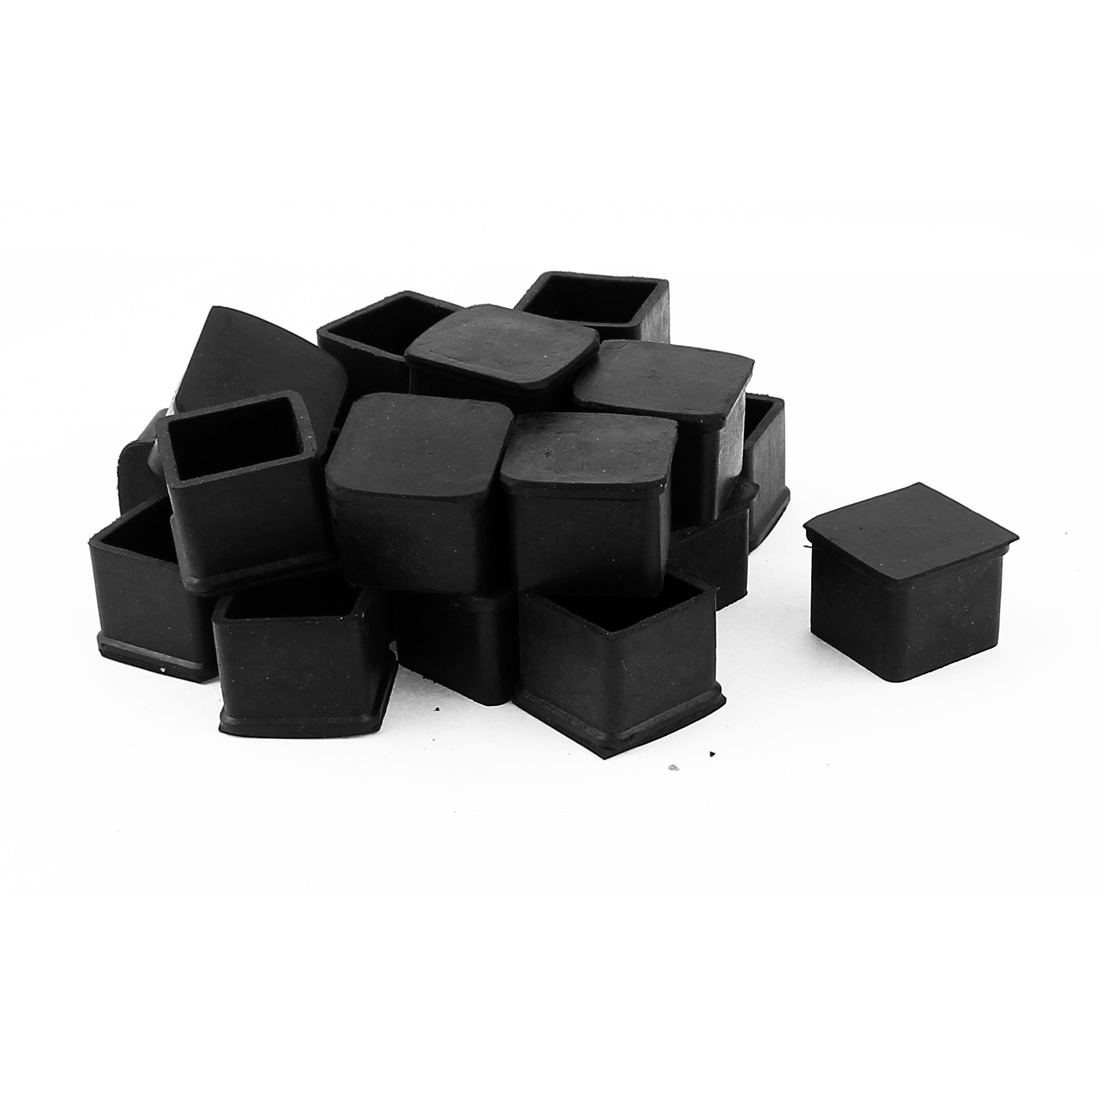 20 Pcs Black Square Chair Table Leg Foot Rubber Covers Protectors 24mm x 24mm